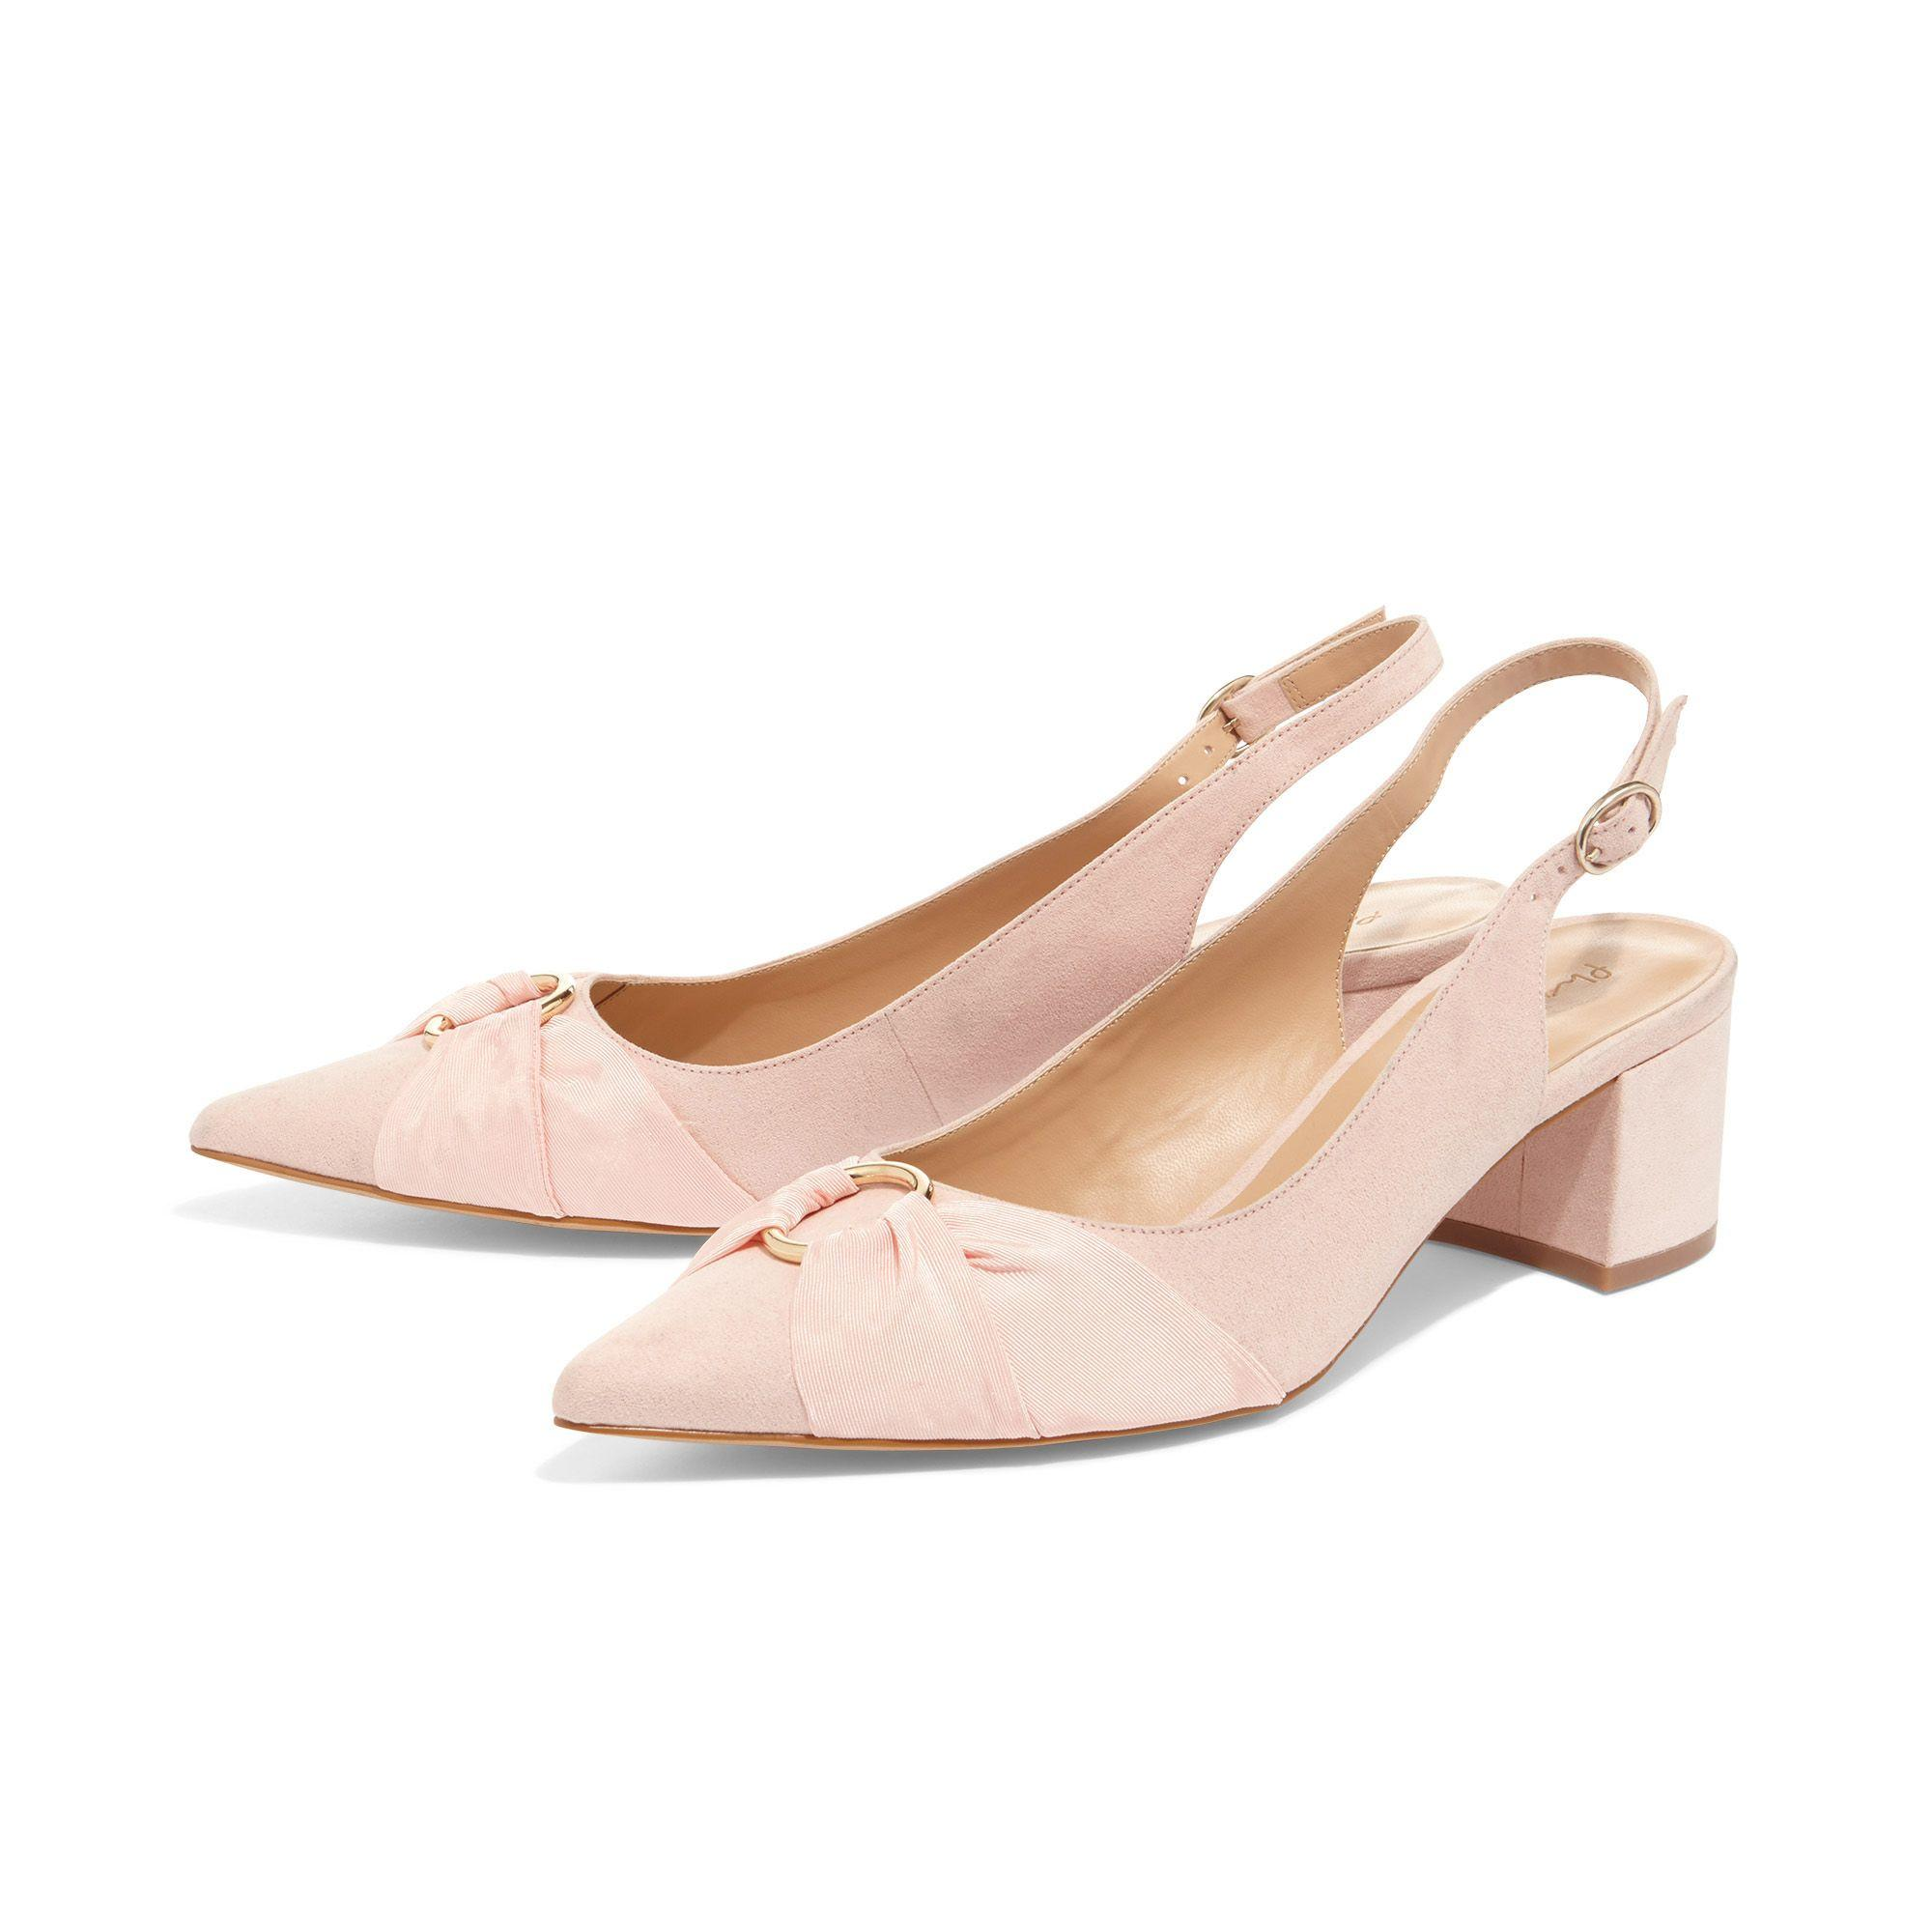 249e4f123a14 Phase Eight - Pink Giselle Block Heel Court Shoes - Lyst. View fullscreen